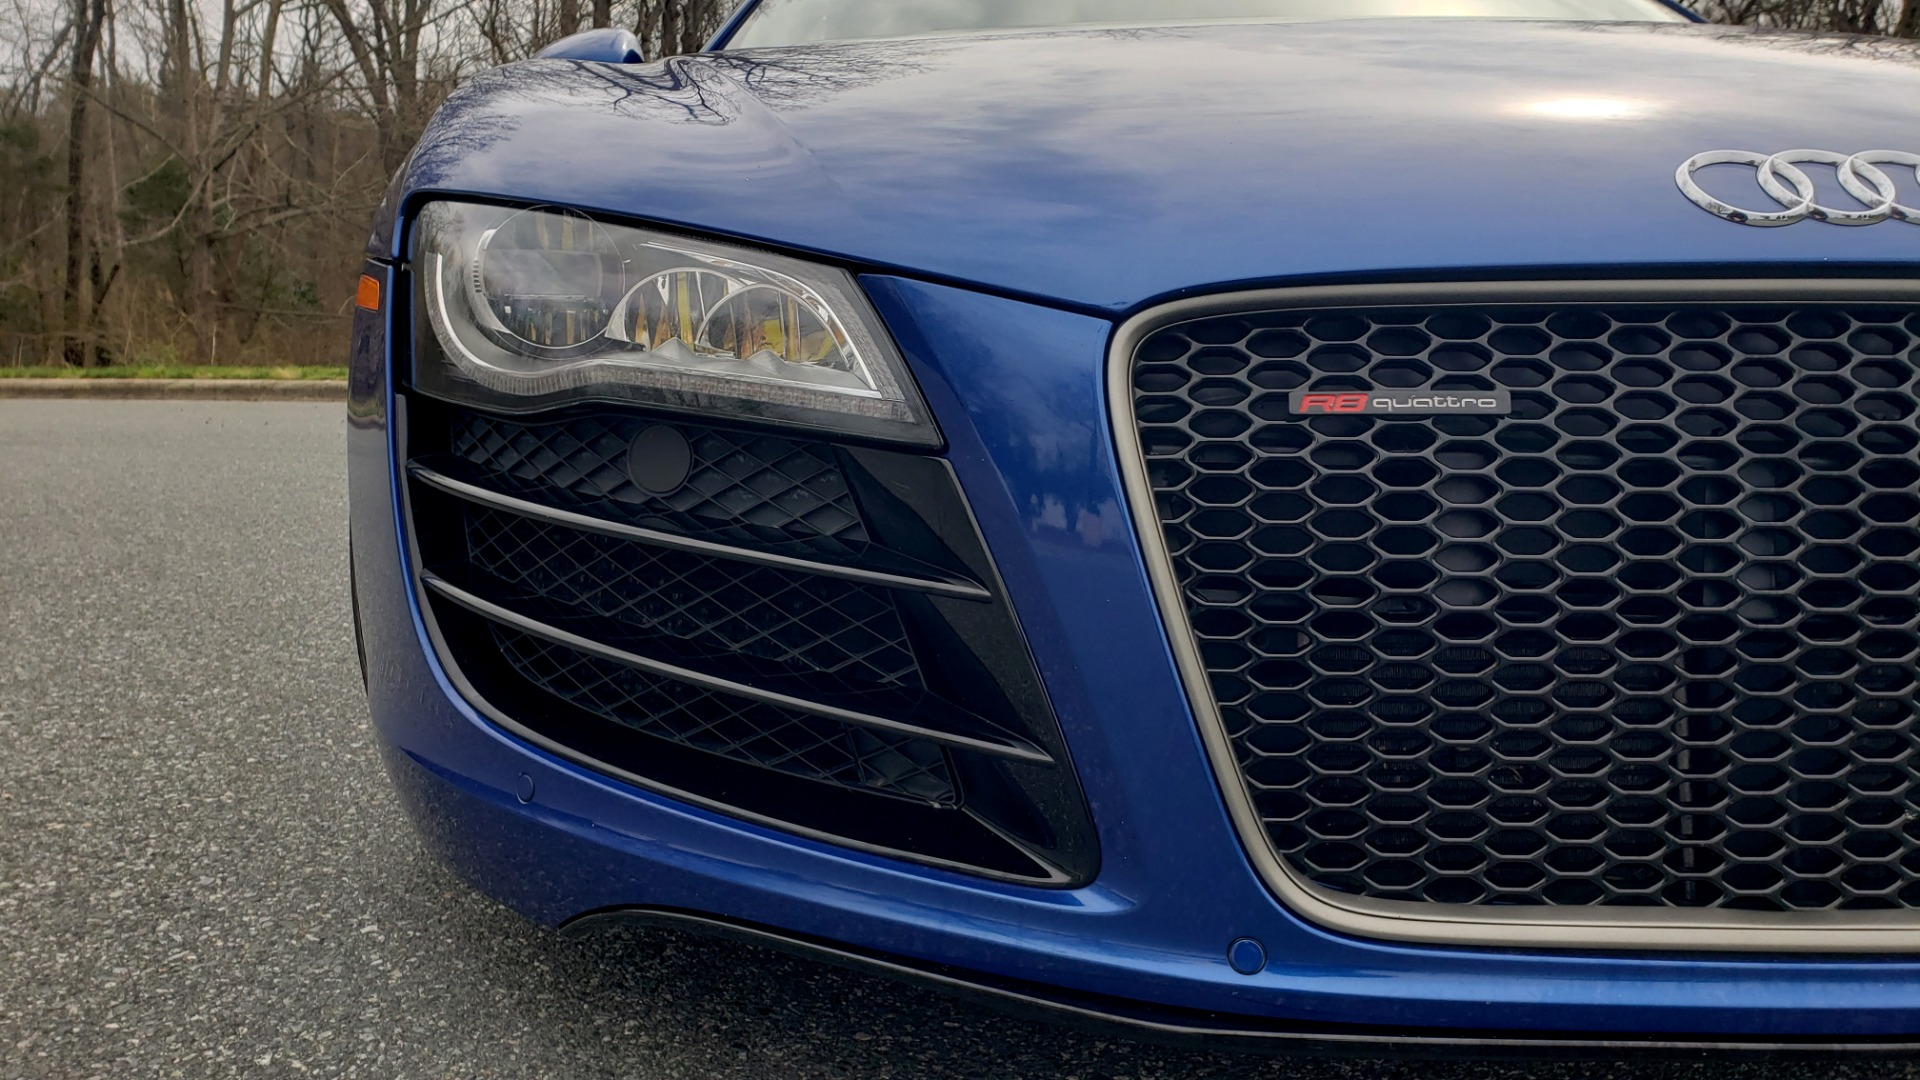 Used 2010 Audi R8 5.2L V10 / AWD / NAV / B&O SND / HTD STS / CUSTOM EXH & WHEELS for sale $78,000 at Formula Imports in Charlotte NC 28227 25